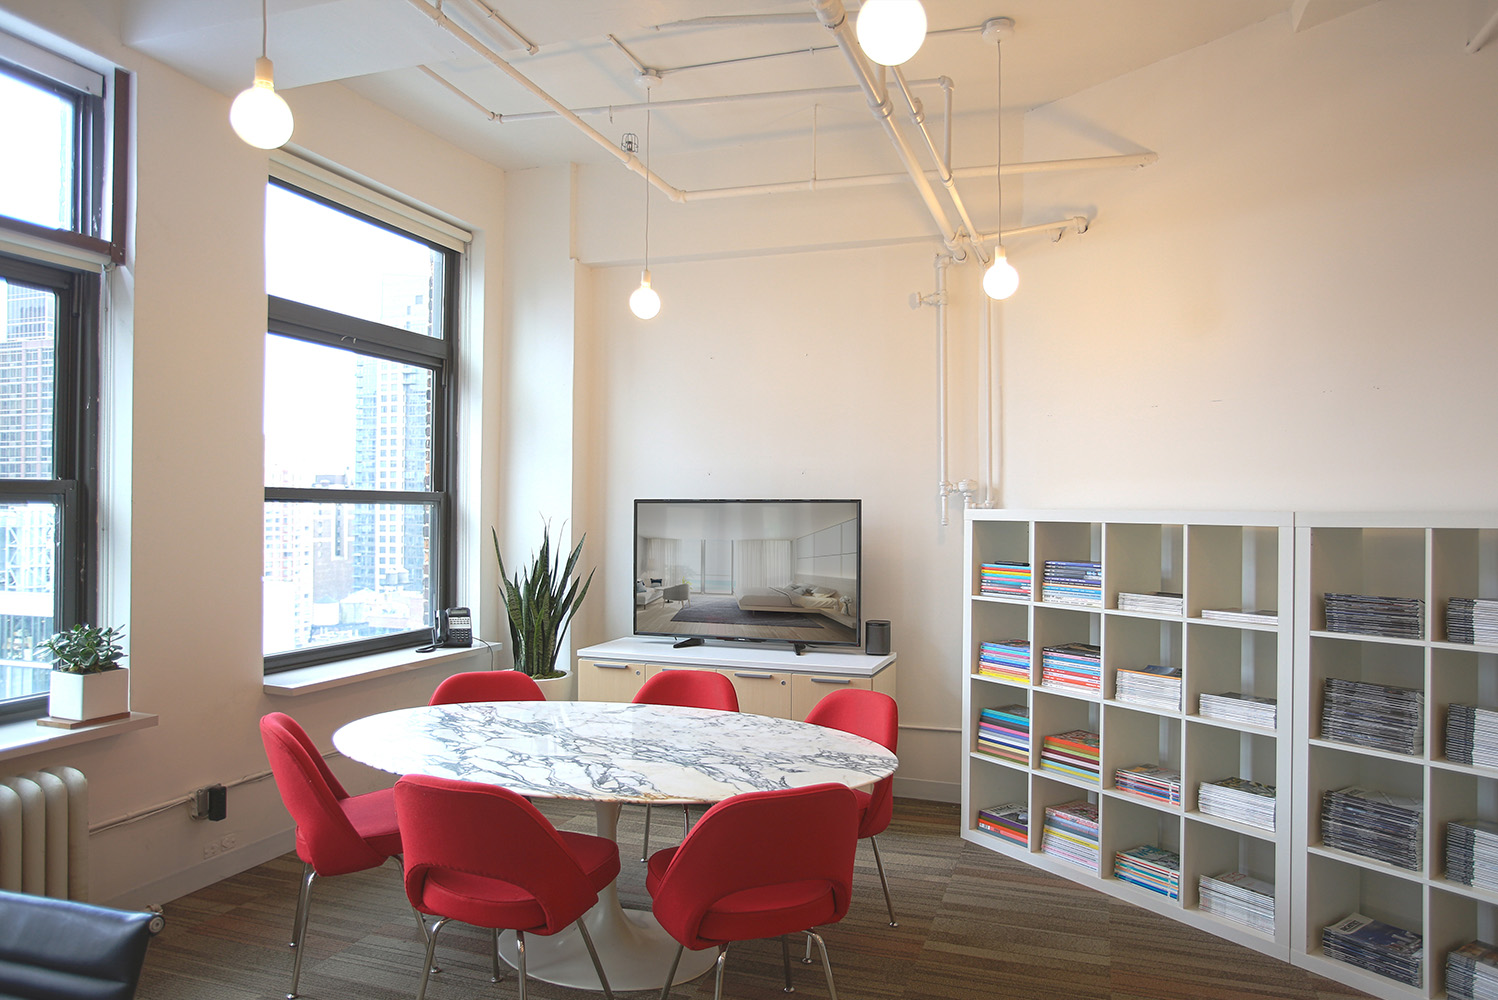 Navigate Design's New York City office is headed by Asifa Tirmizi, who will serve as managing partner for the firm.